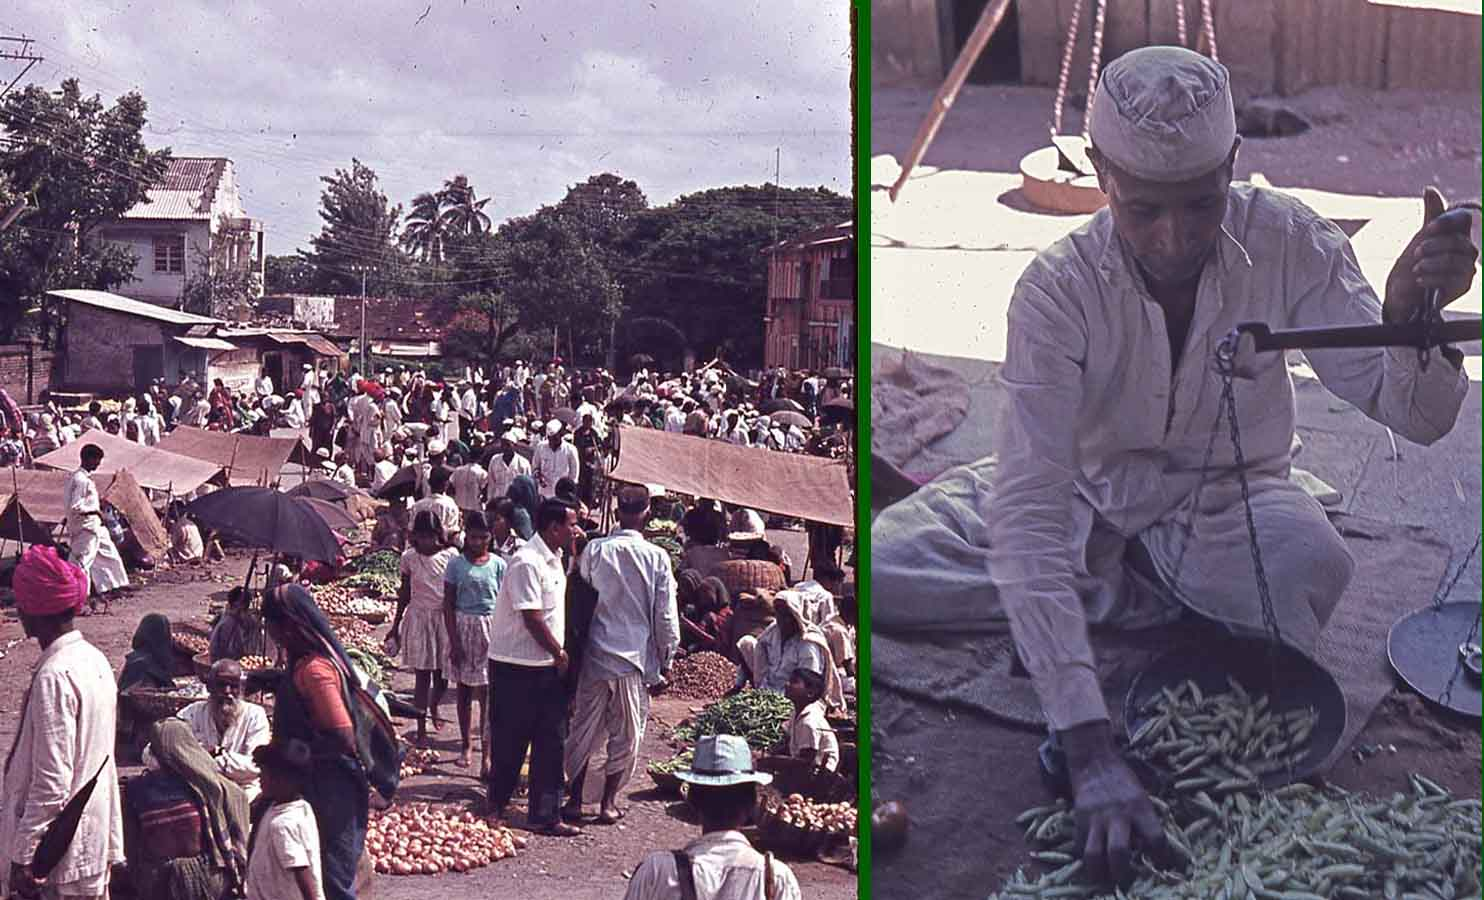 People inspecting vegetables and fruits along with man selling green beans